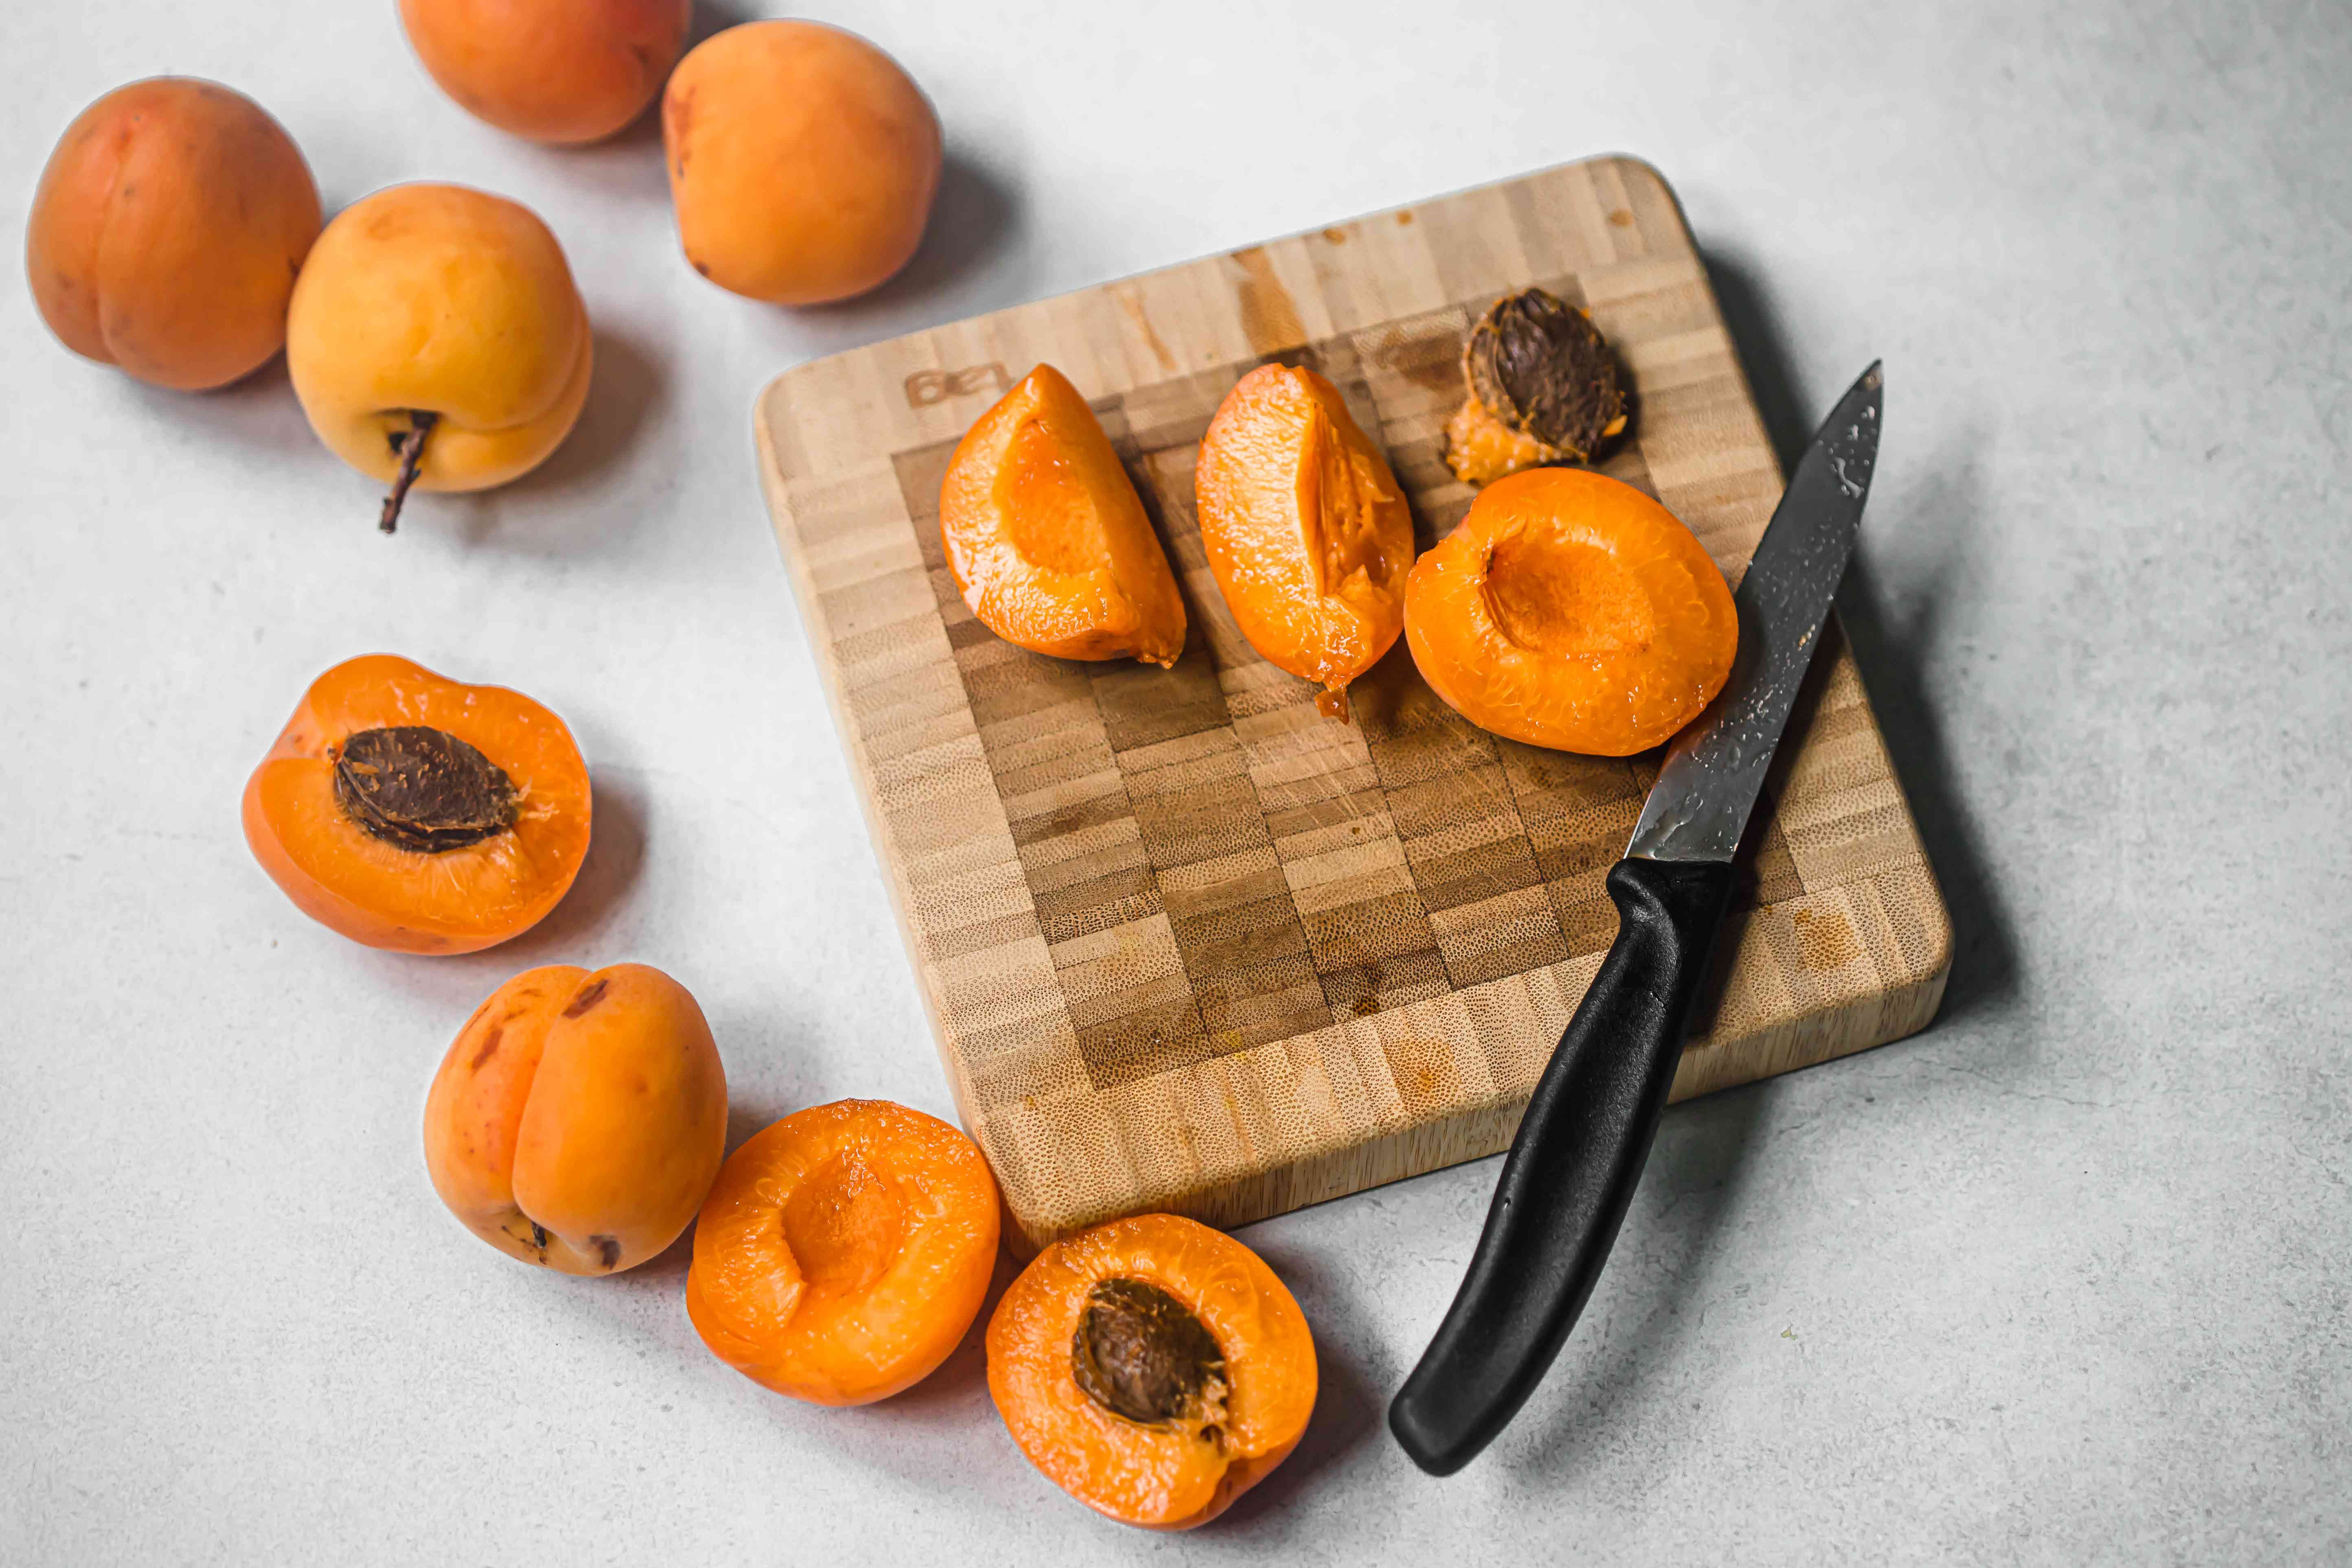 Apricots with a wooden cutting board